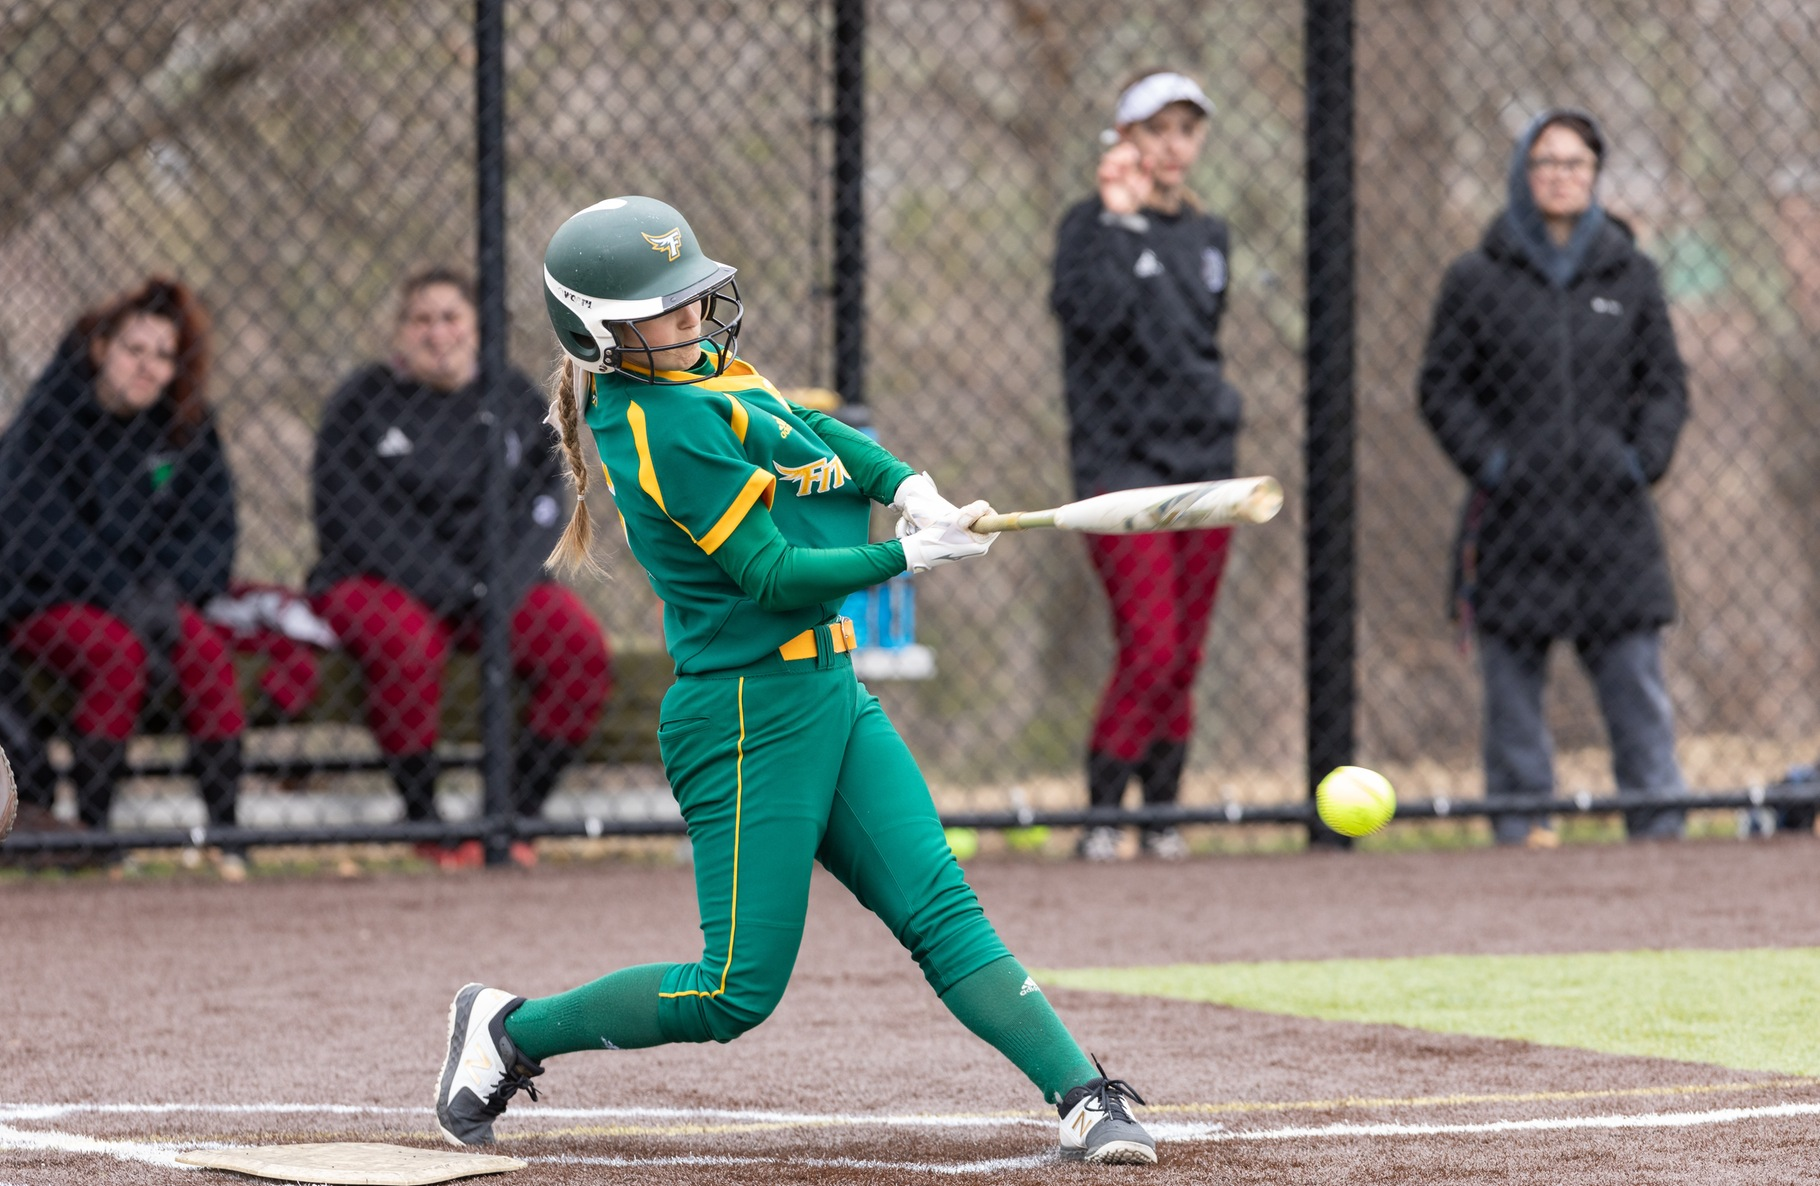 #4 Fitchburg State Edged By Top Seeded Bears, 2-0